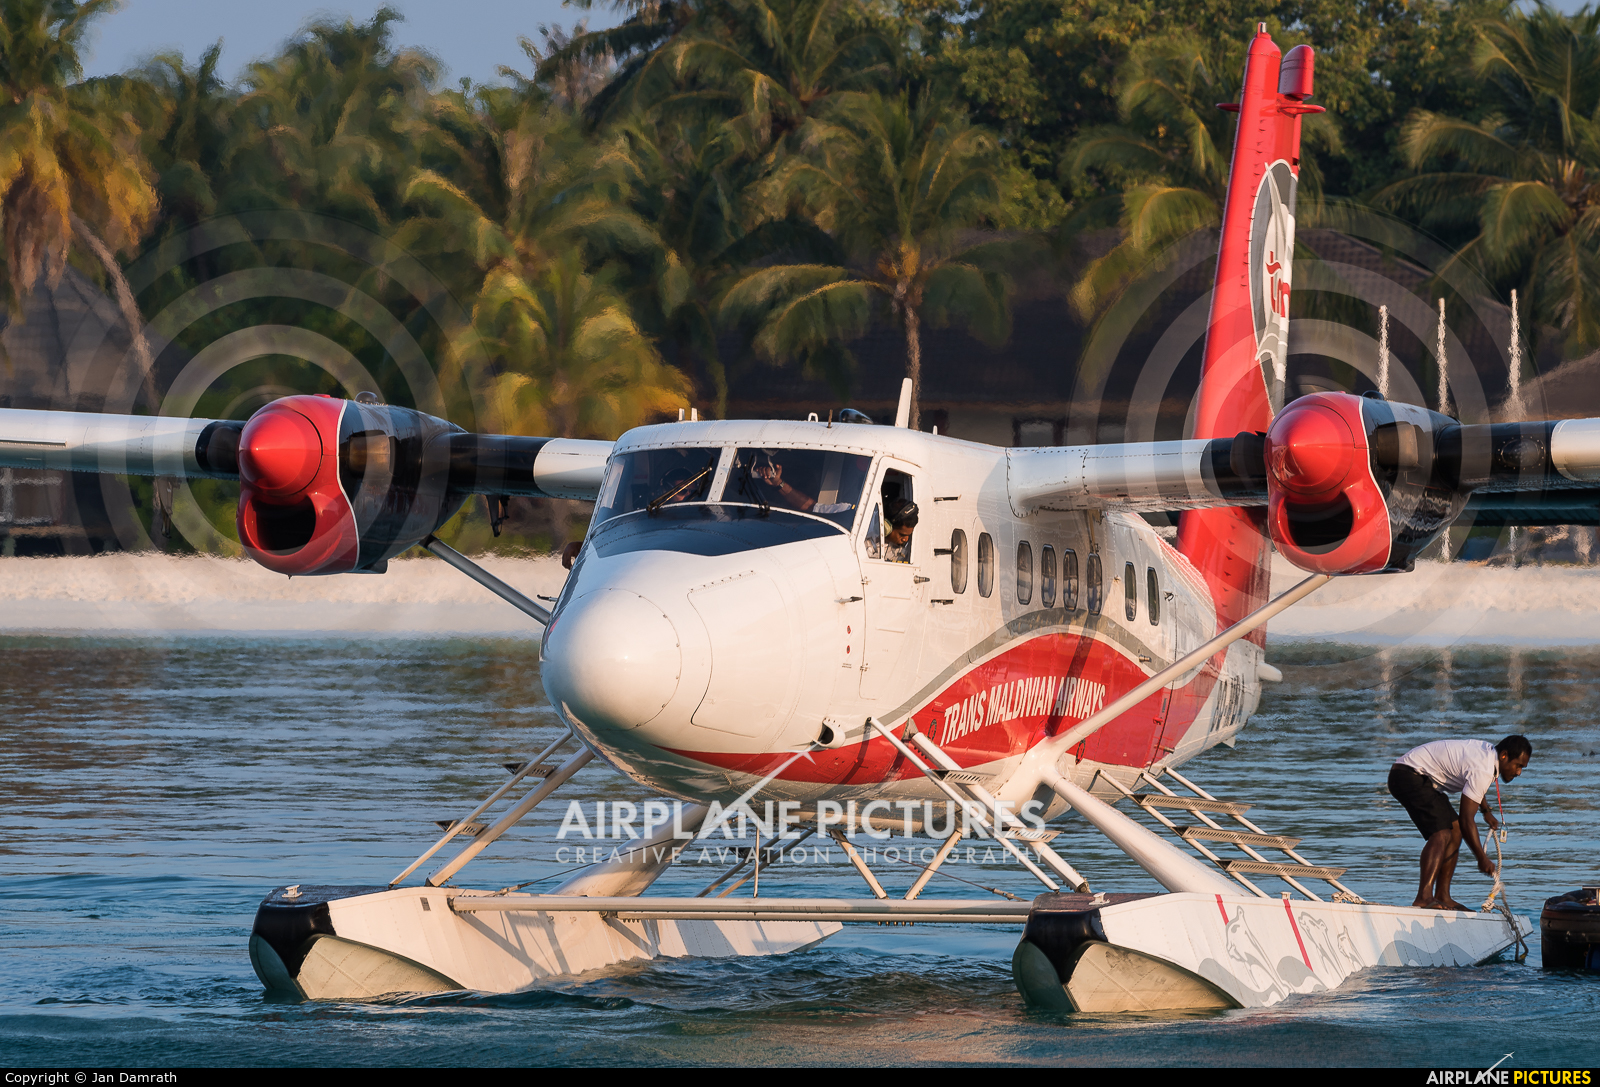 Trans Maldivian Airways - TMA 8Q-MBA aircraft at Off Airport - Maldives